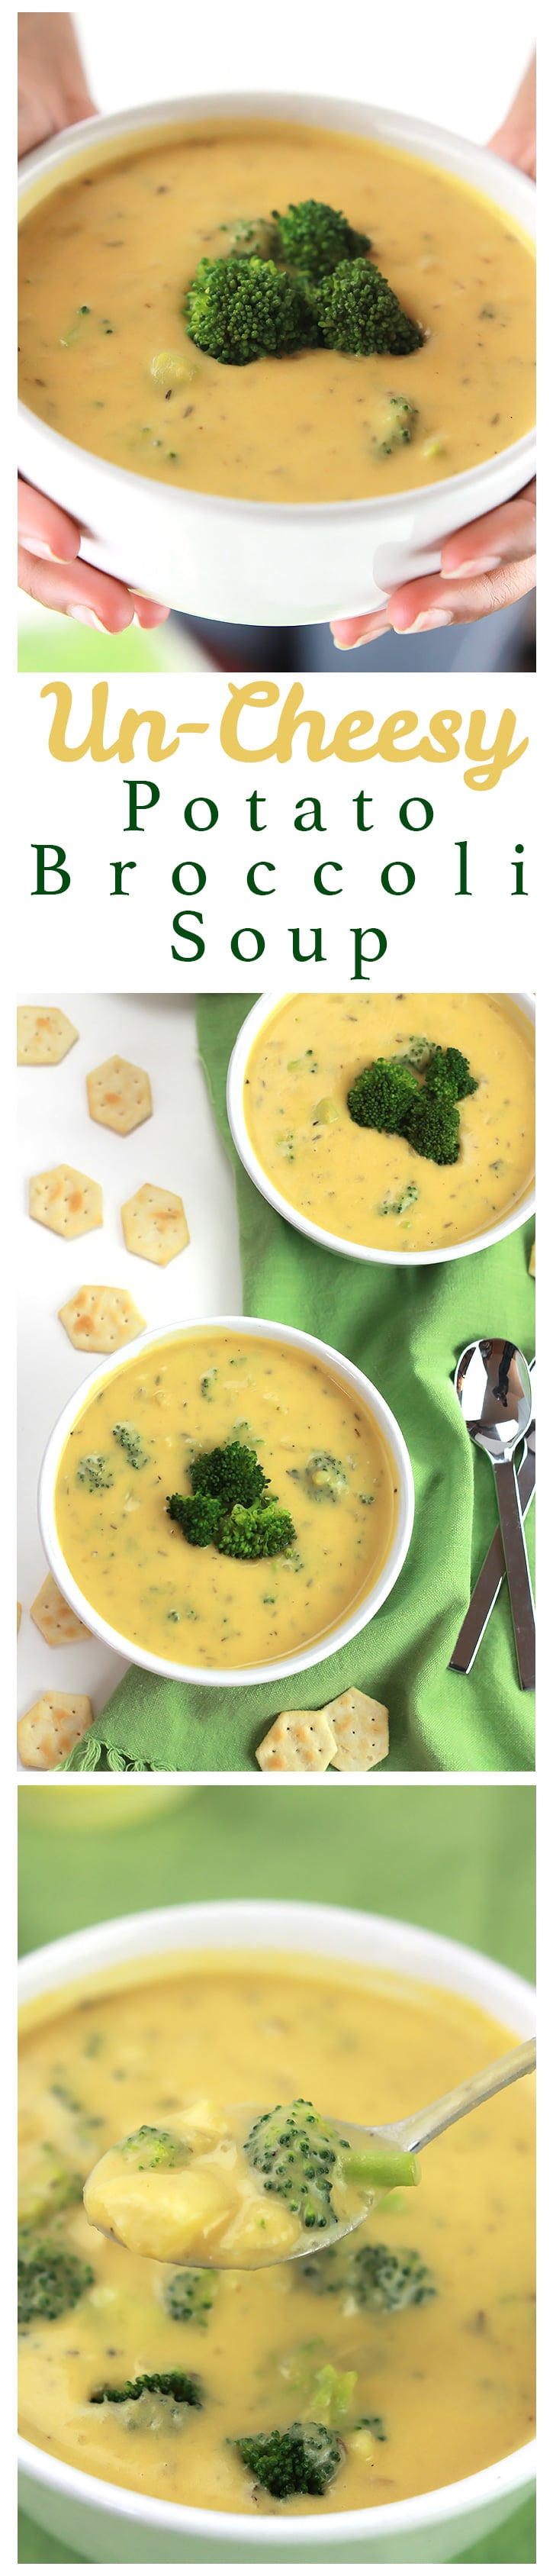 Rich and hearty, this Un-Cheesy Potato & Broccoli Soup is full of flavor and comes together in minutes!